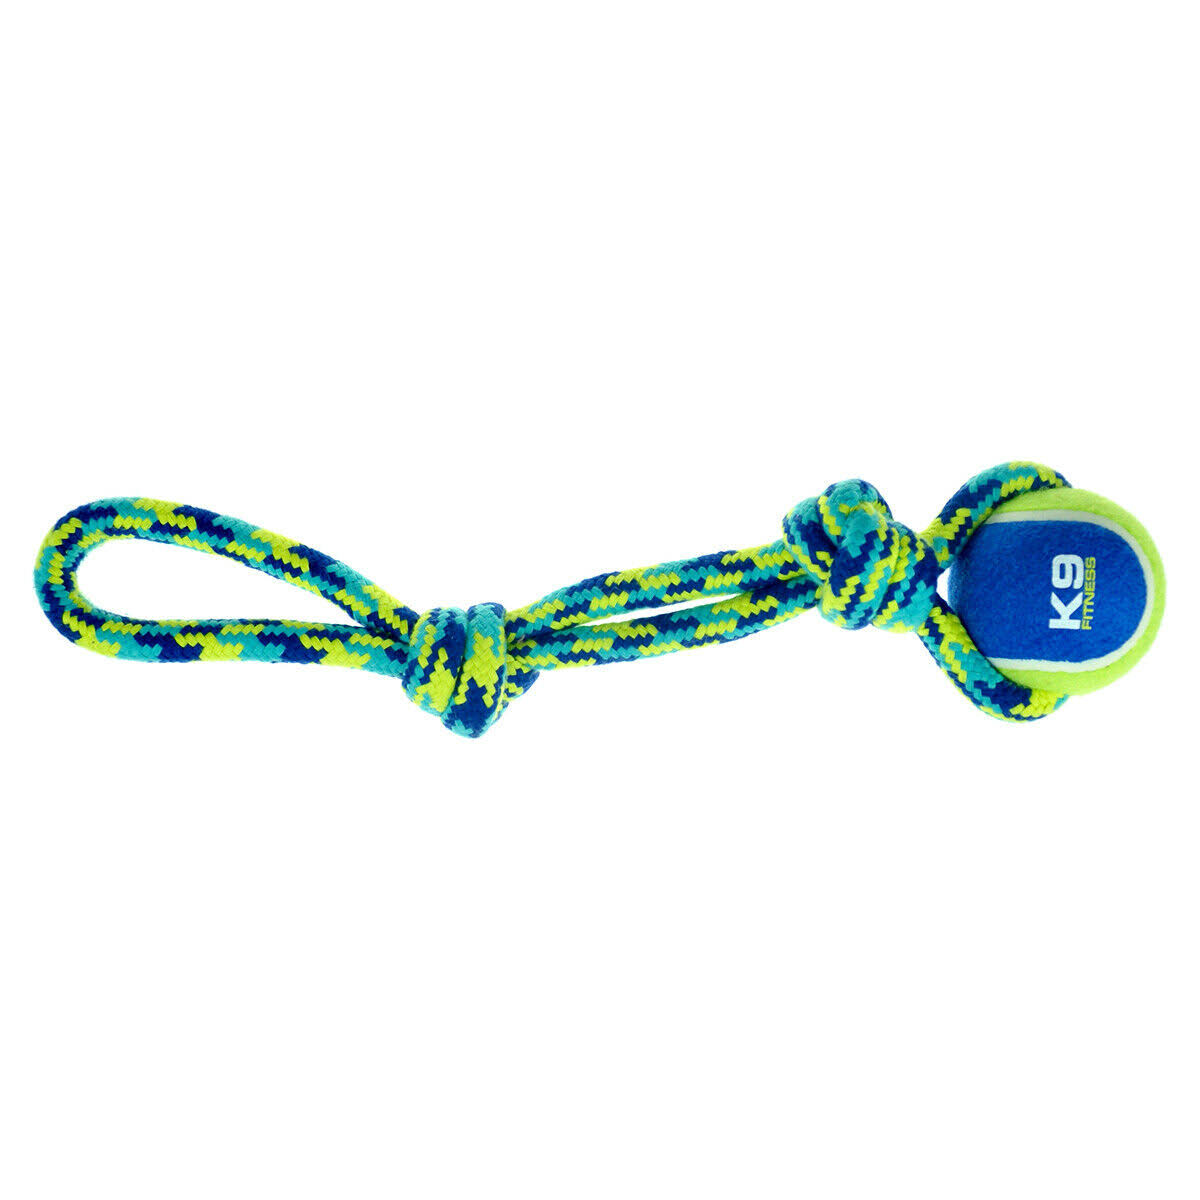 K9 Fitness Tennis Ball & Rope Tug Dog Toy - from £5.39